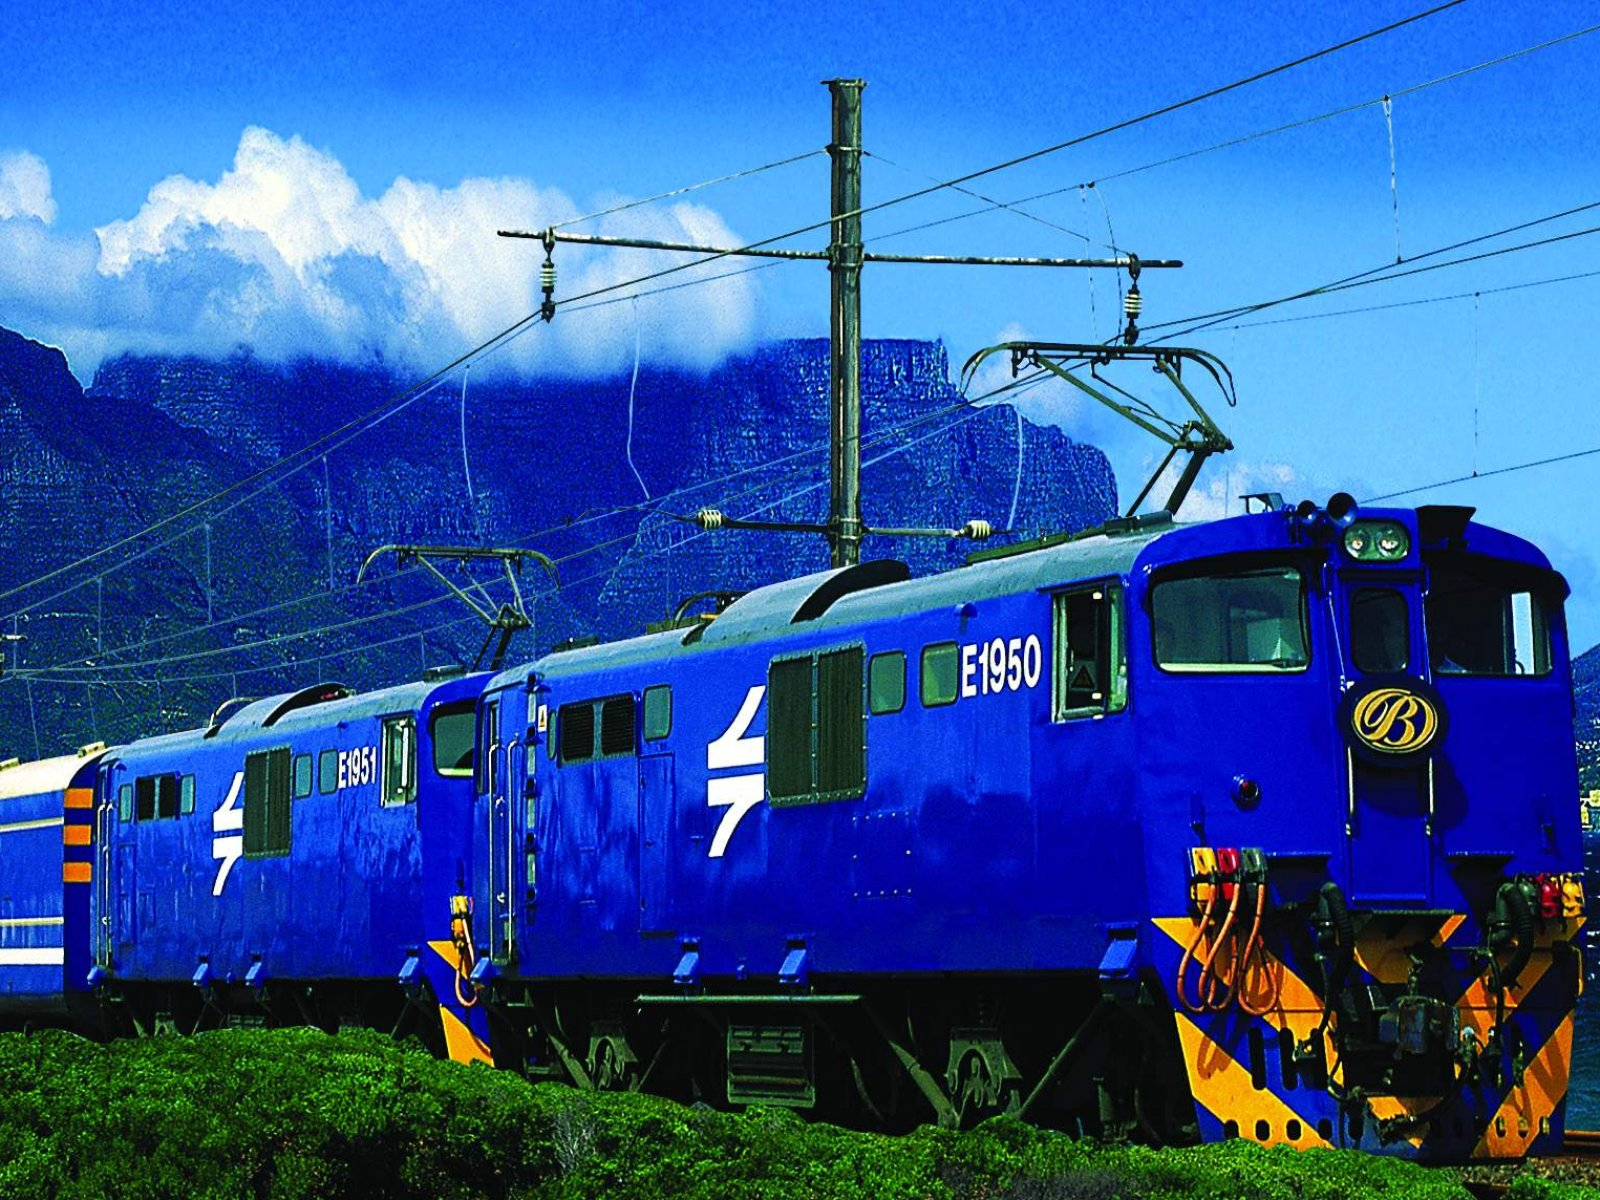 How to ride on the Blue Train in Cape Town